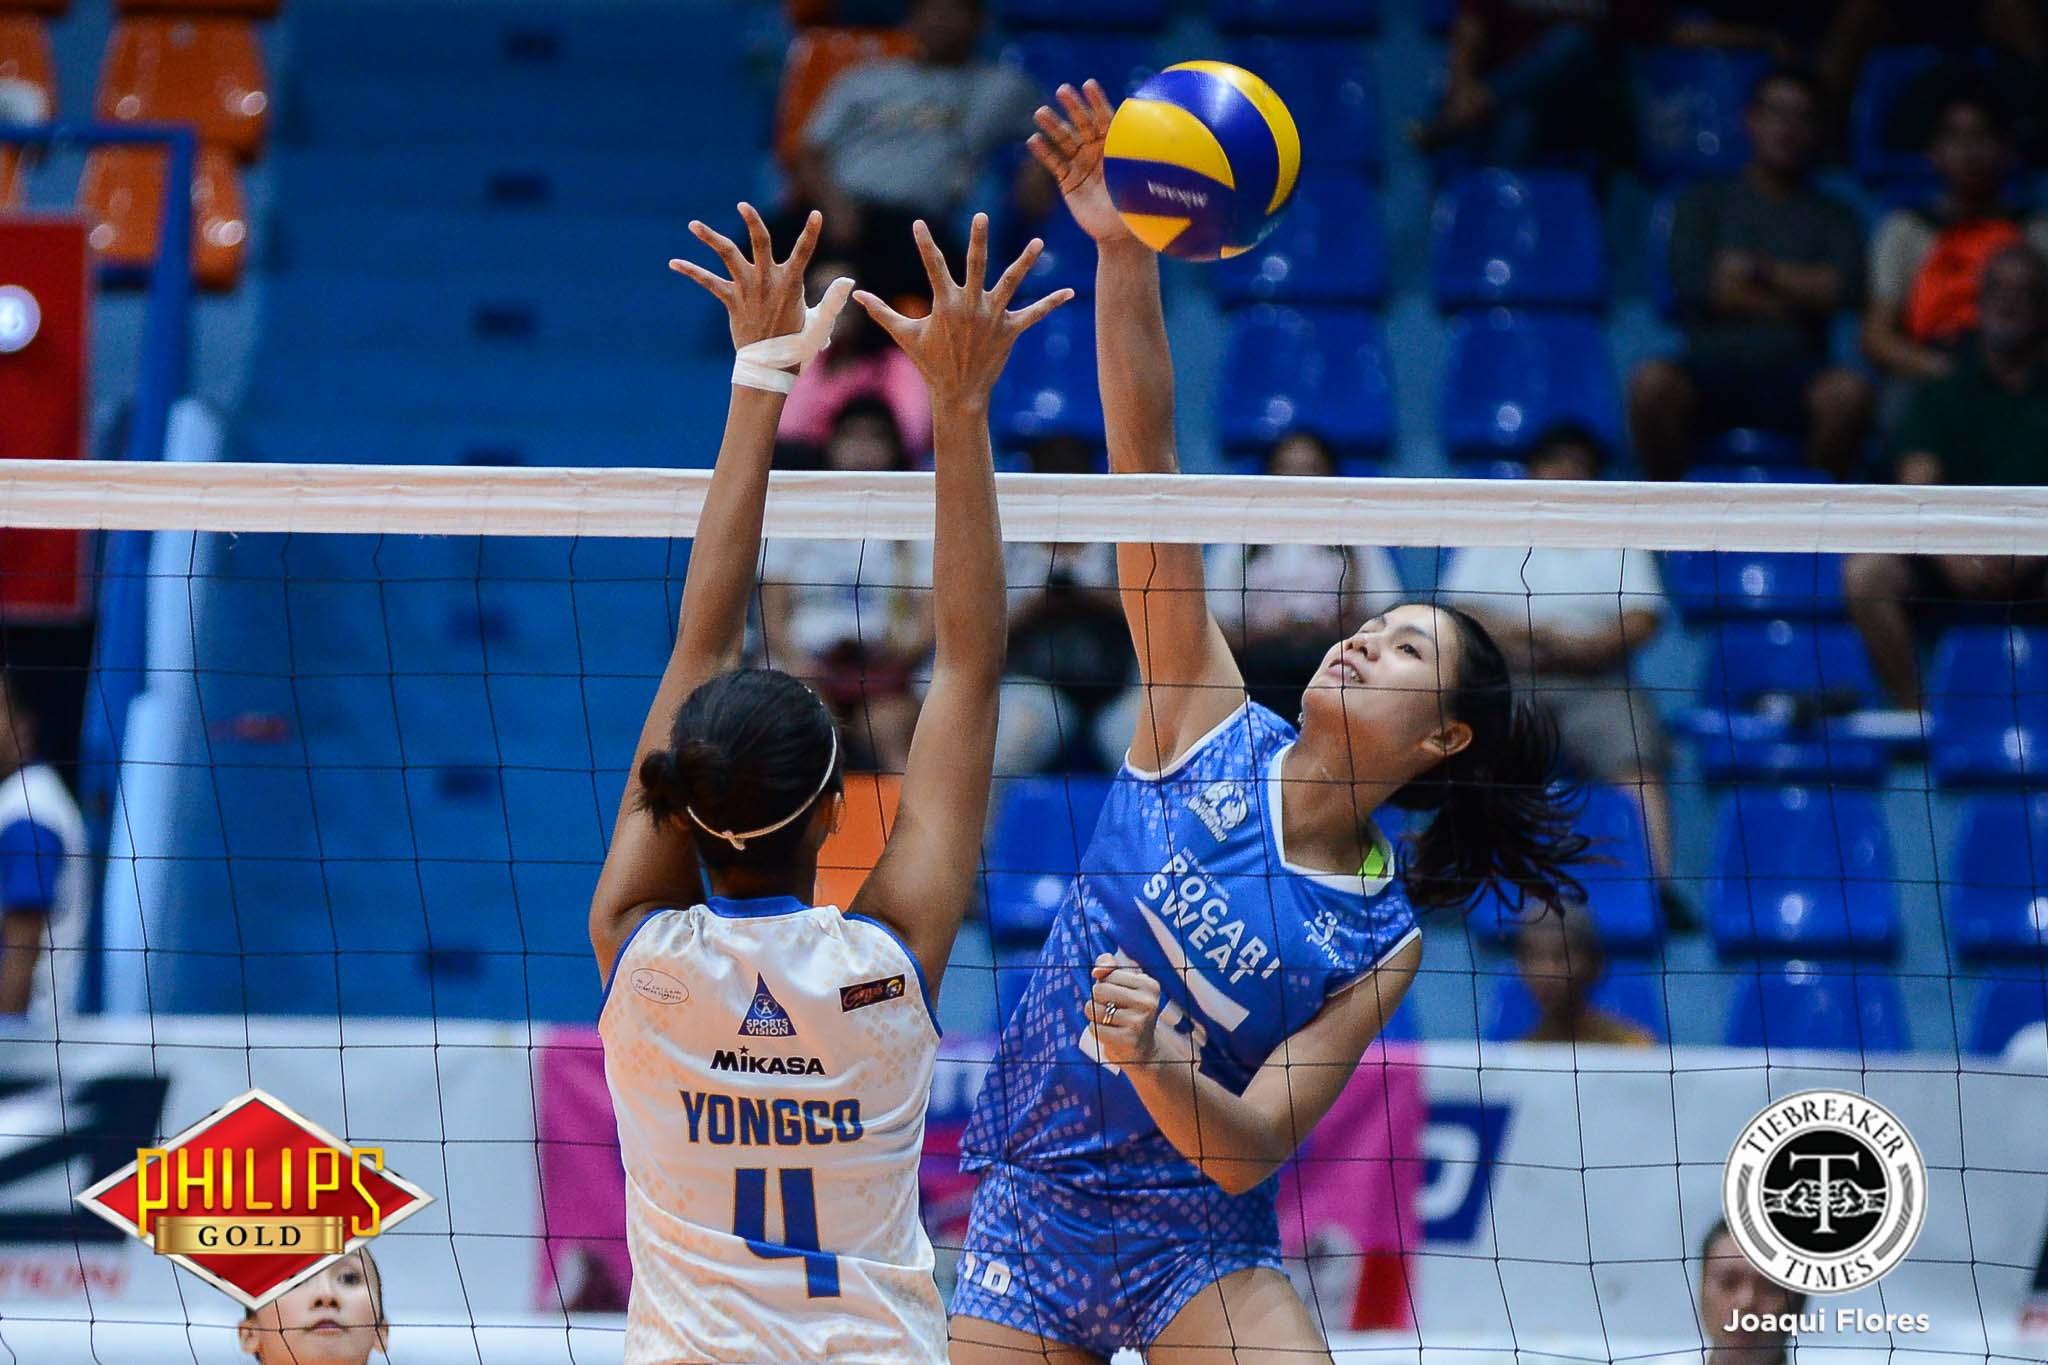 Philippine Sports News - Tiebreaker Times Gutsy Pocari Sweat stays alive News PVL Volleyball  Rico De Guzman Pocari Sweat Lady Warriors Myla Pablo Melissa Gohing Joy Cases Jeanette Panaga Jasper Jimenez Gyzelle Sy Dell Palomata Air Force Jet Spikers 2017 PVL Women's Open Conference 2017 PVL Season